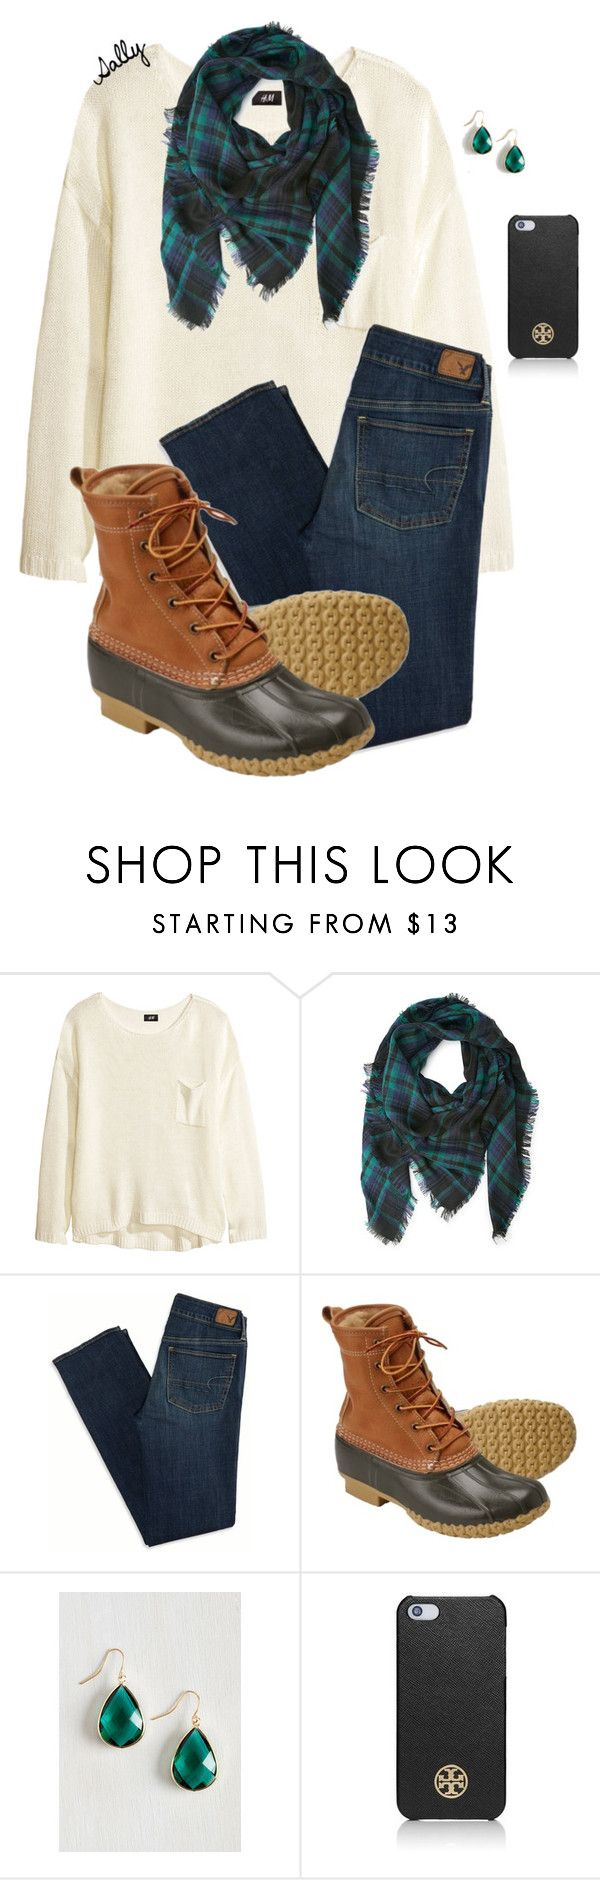 """How to wear Bean Boots"" by sc-prep-girl ❤ liked on Polyvore featuring H&M, Forever 21, American Eagle Outfitters, L.L.Bean and Tory Burch"